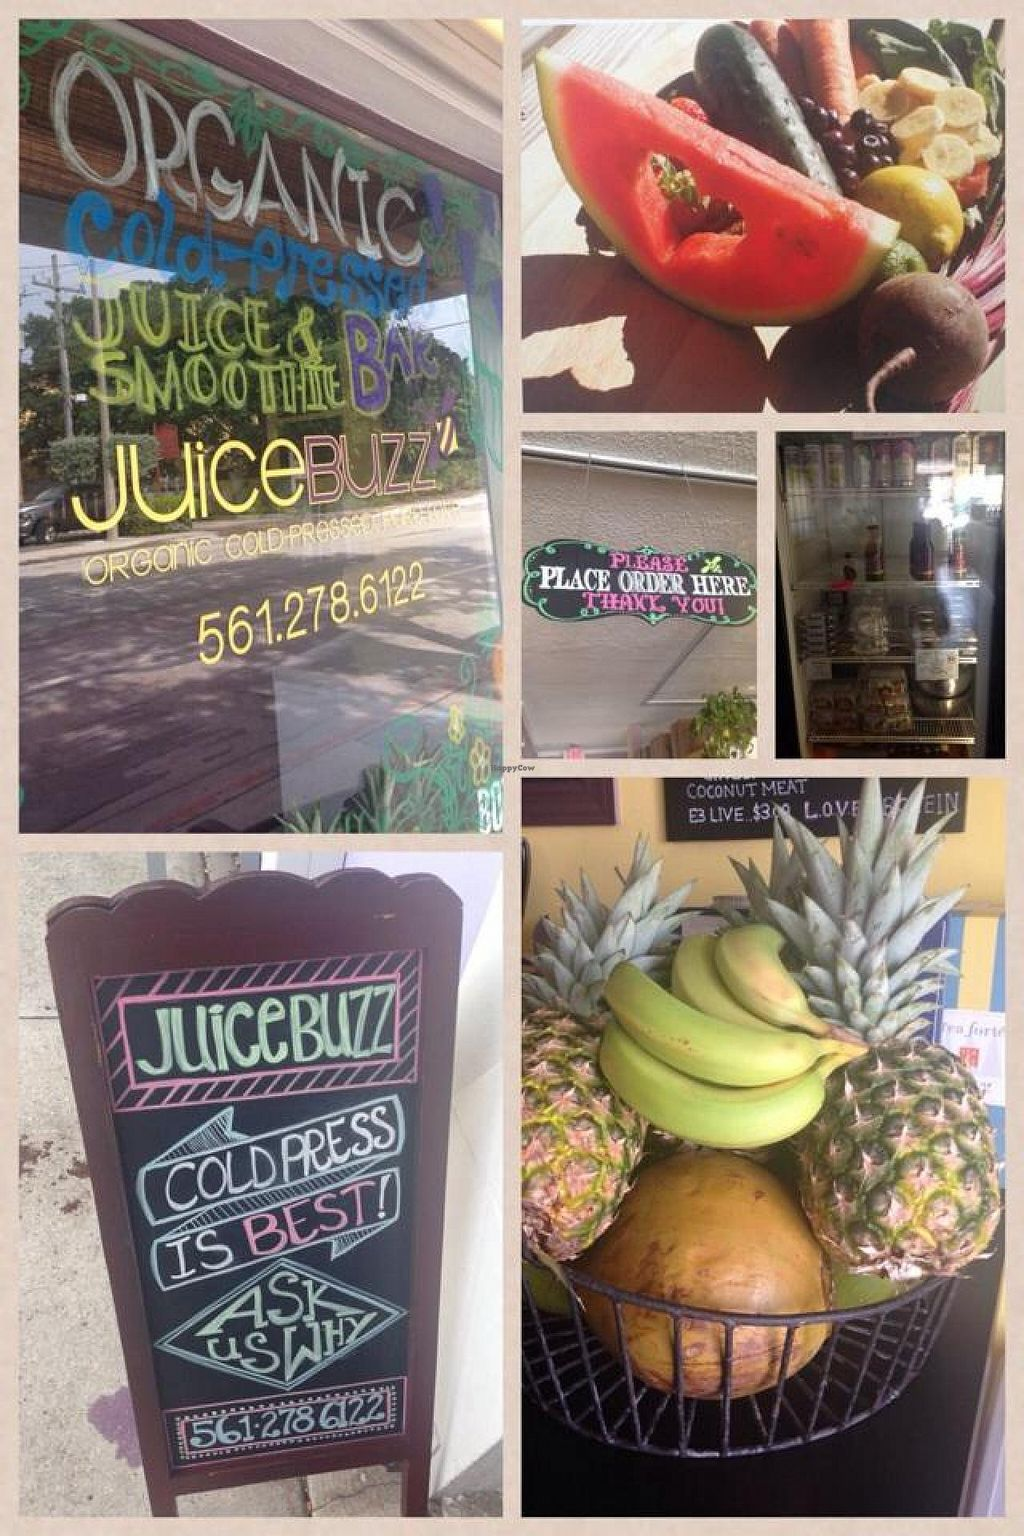 """Photo of JuiceBuzz  by <a href=""""/members/profile/jaxjuice"""">jaxjuice</a> <br/>Delray Beach <br/> October 5, 2014  - <a href='/contact/abuse/image/51524/82253'>Report</a>"""